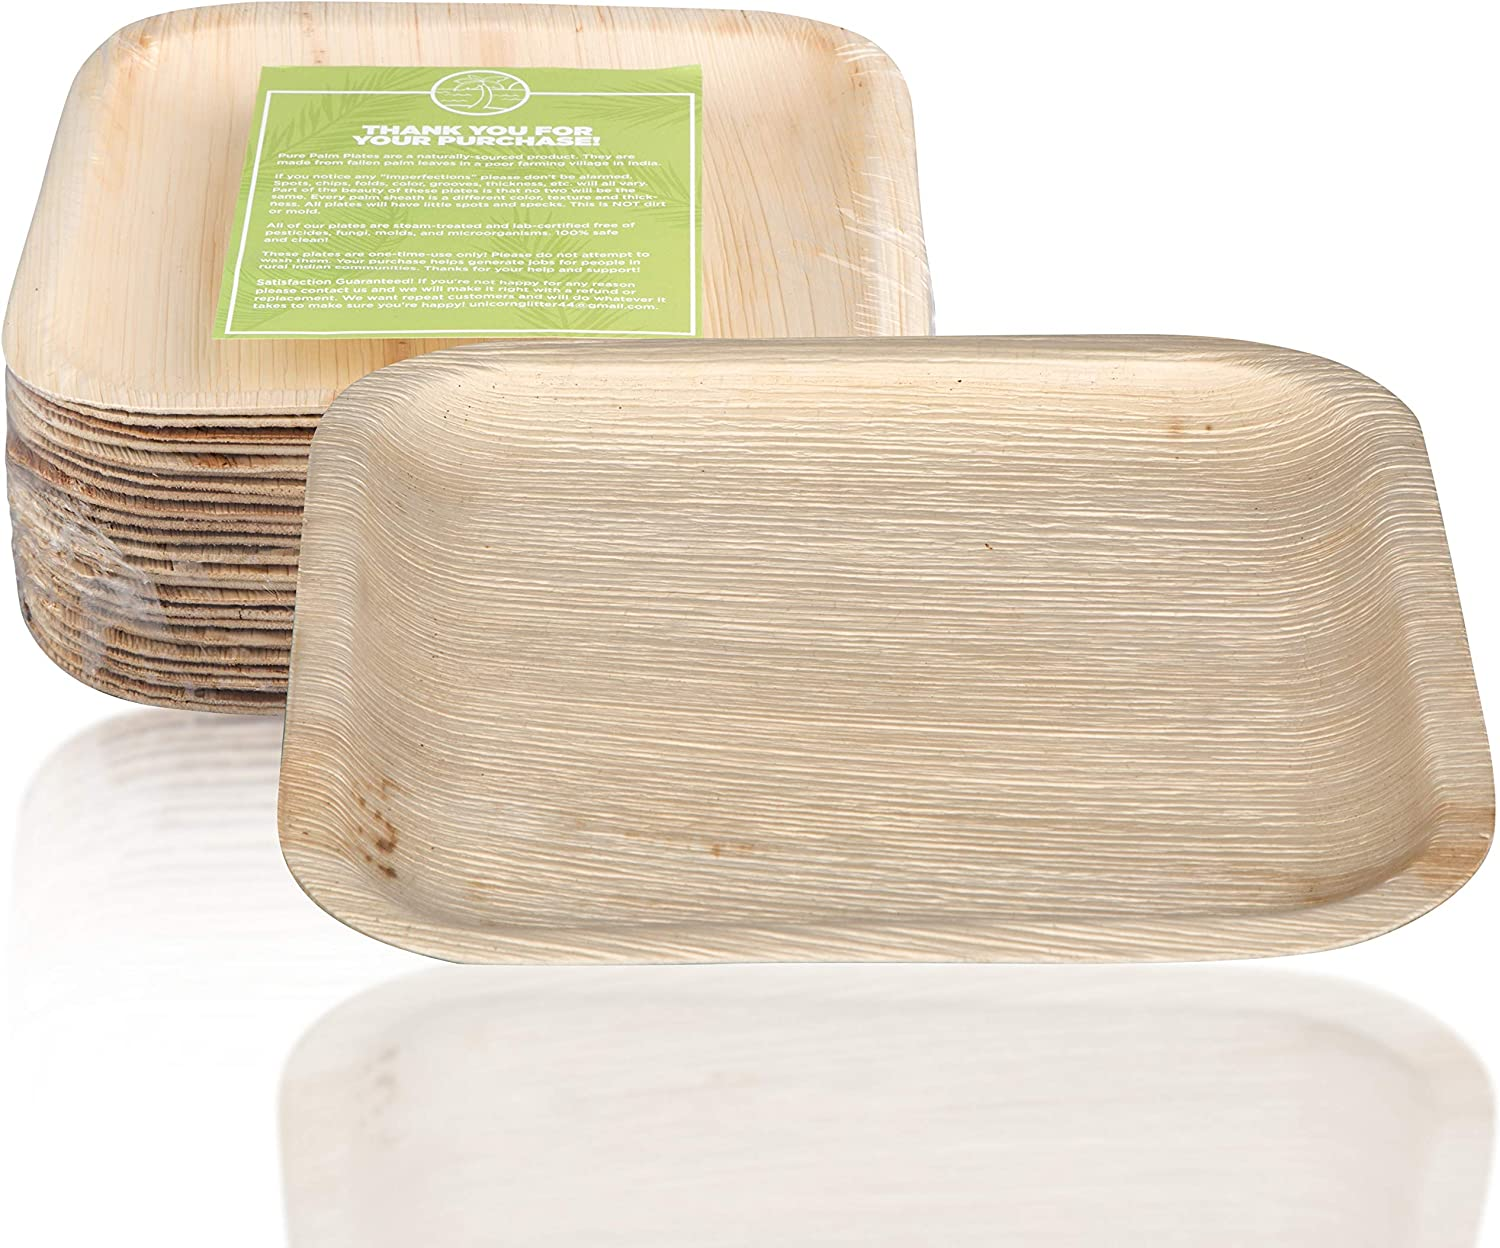 """Pure Palm Planet Friendly Palm Leaf Plates; Bamboo-Style, Upscale Disposable Dinnerware; All-natural Biodegradable Plates (10"""" Square) (25 pack)"""